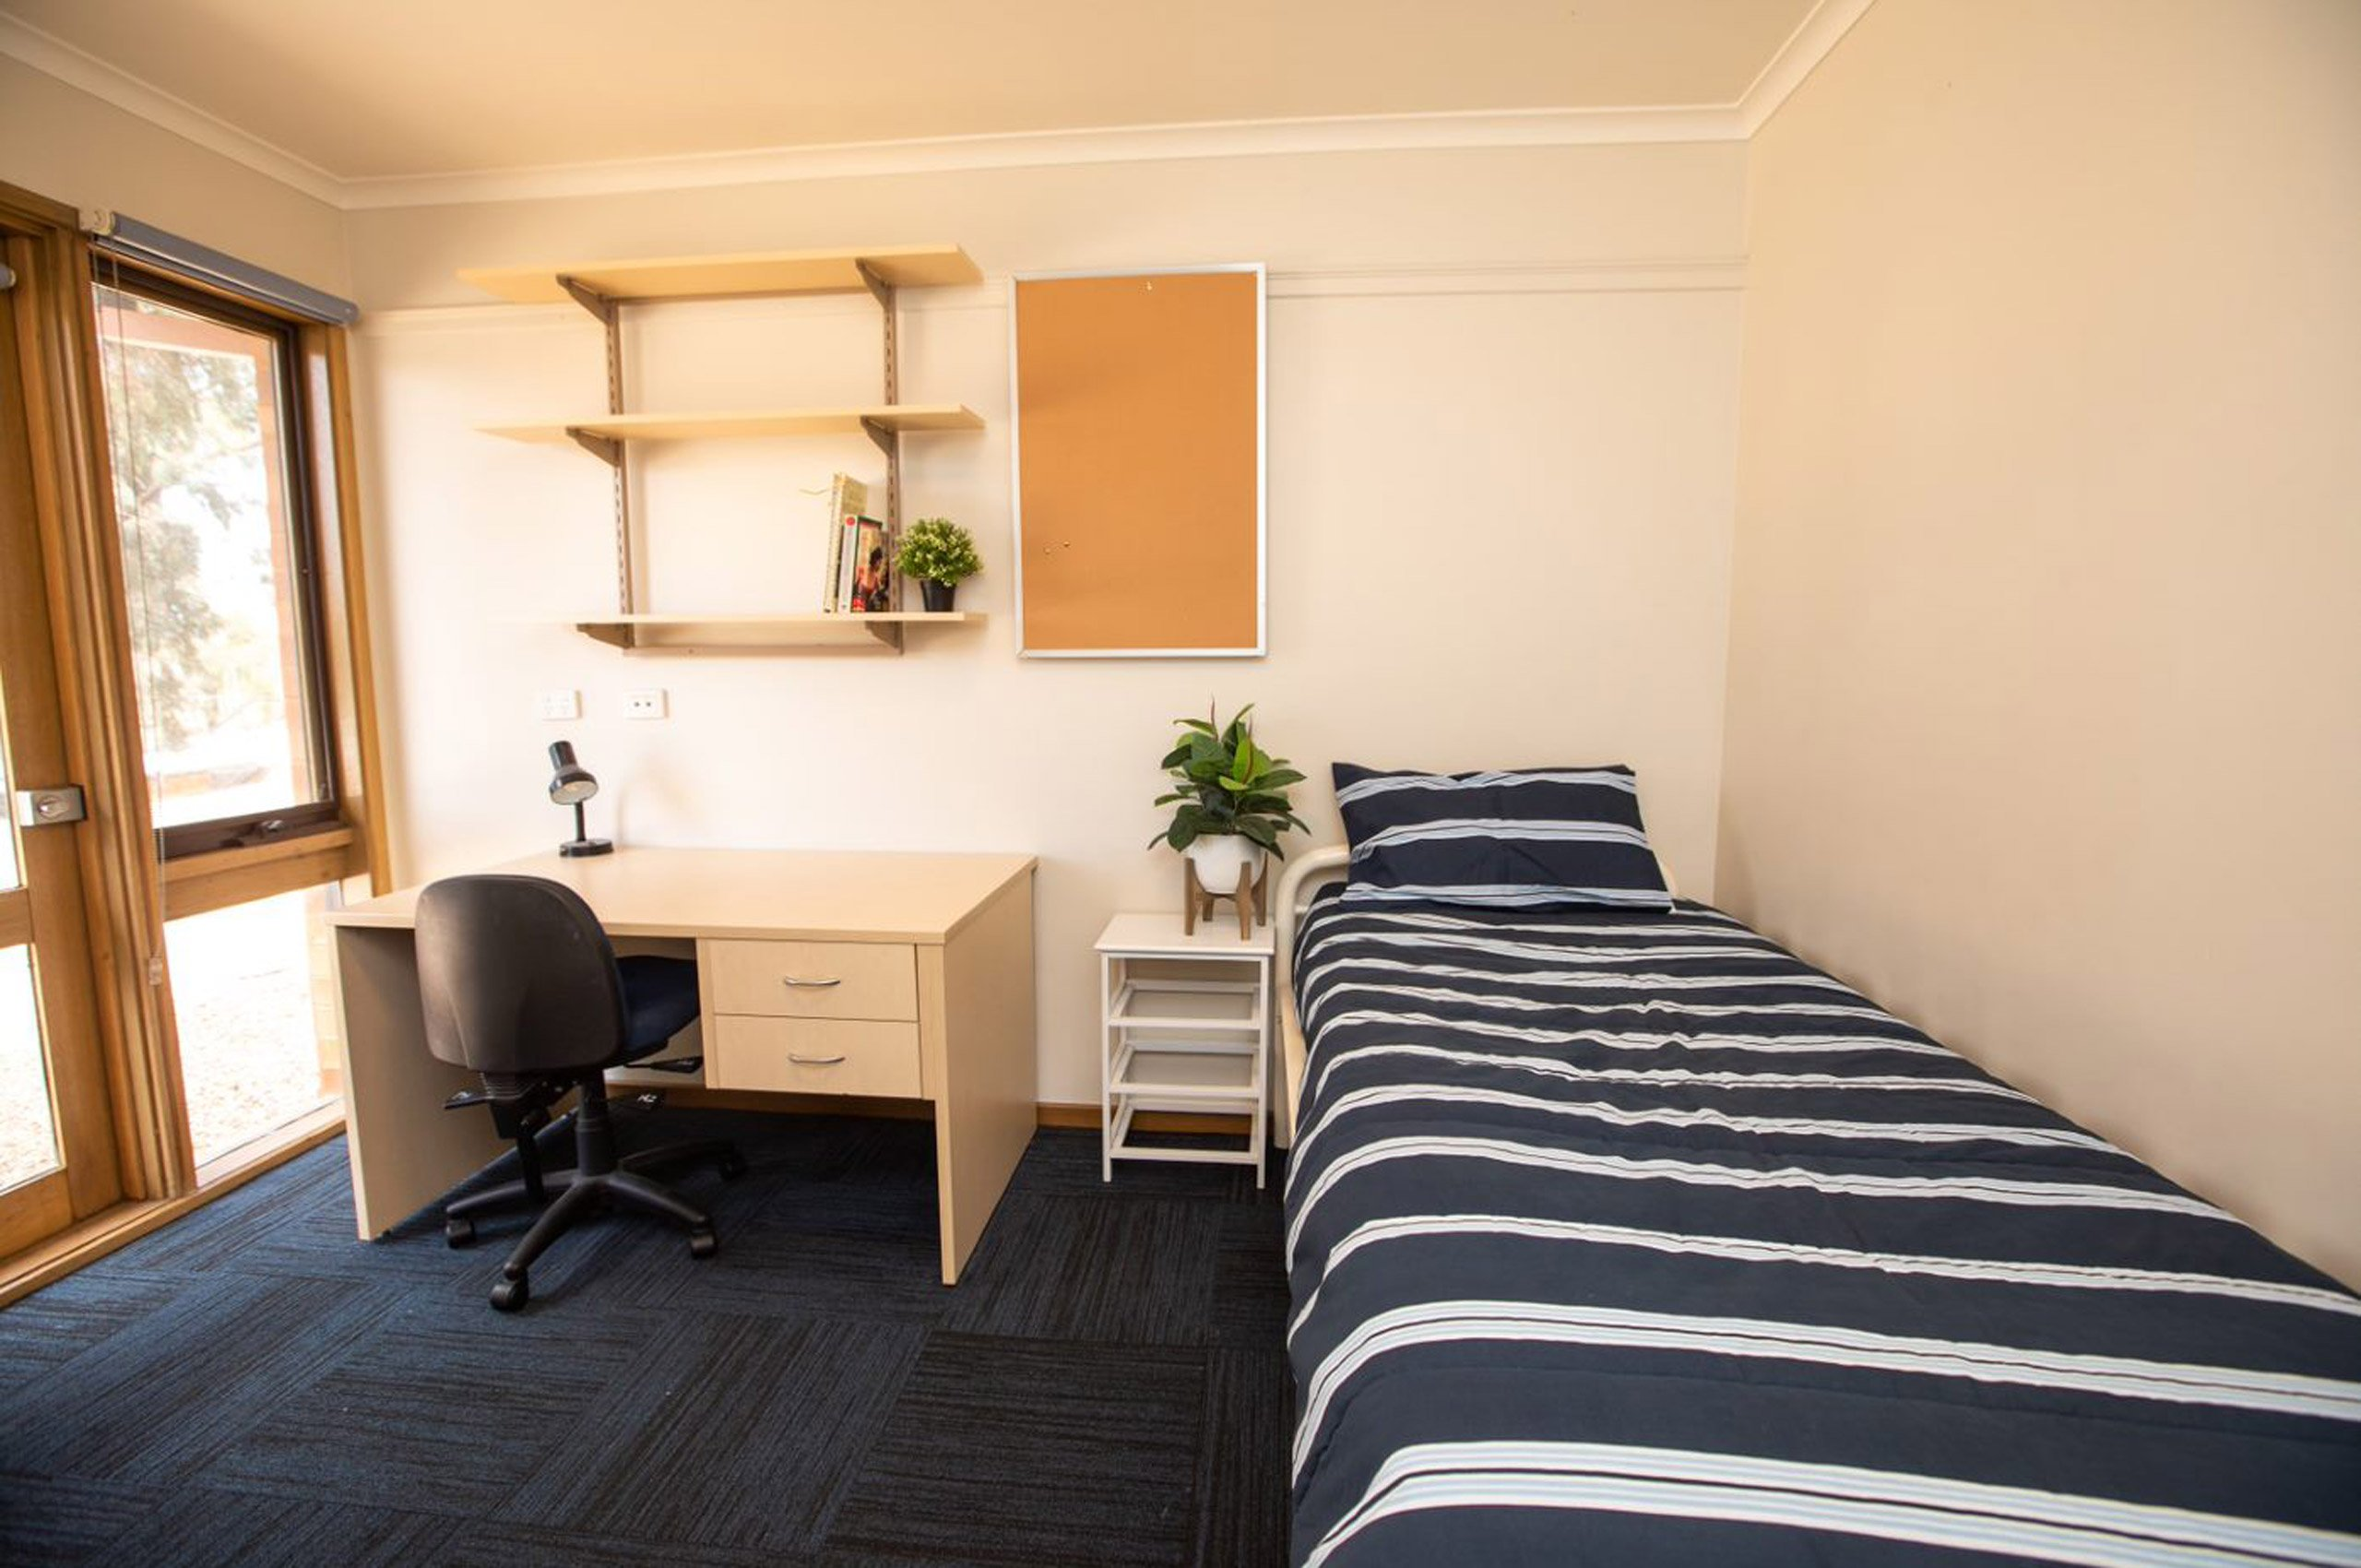 Single bedroom with desk and chair.